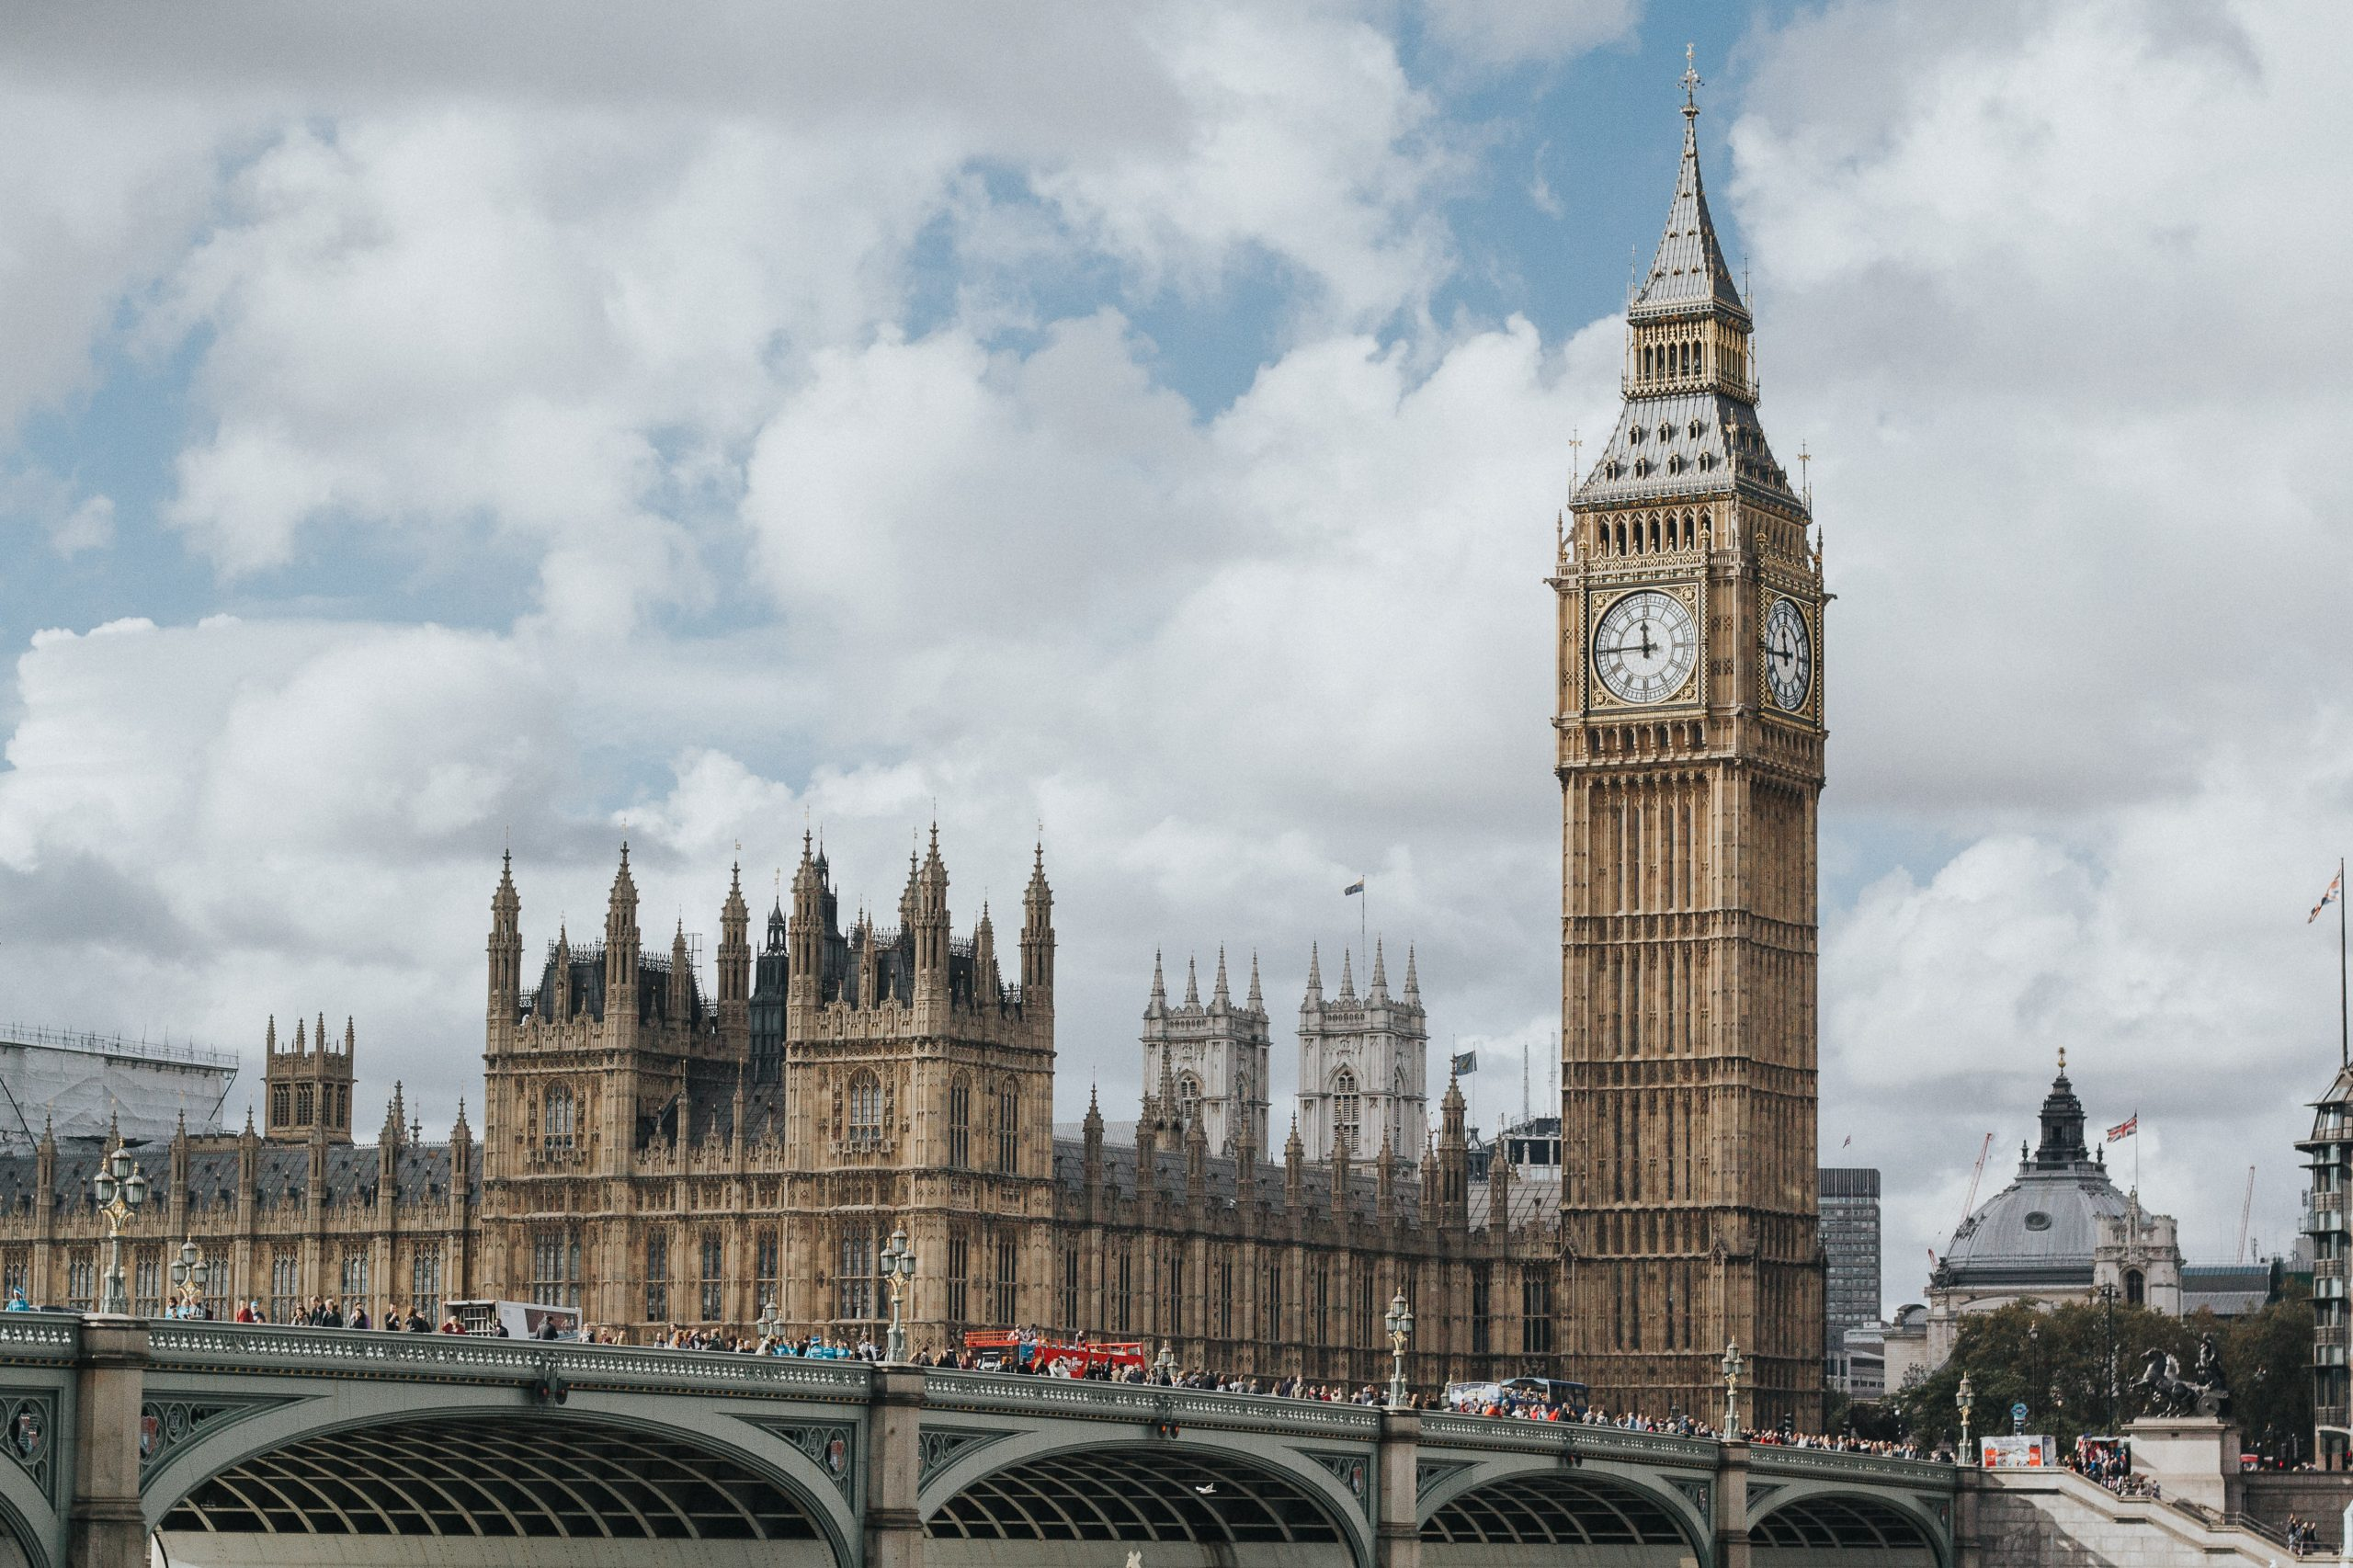 FIRE SAFETY BILL RETURNS TO THE LORDS